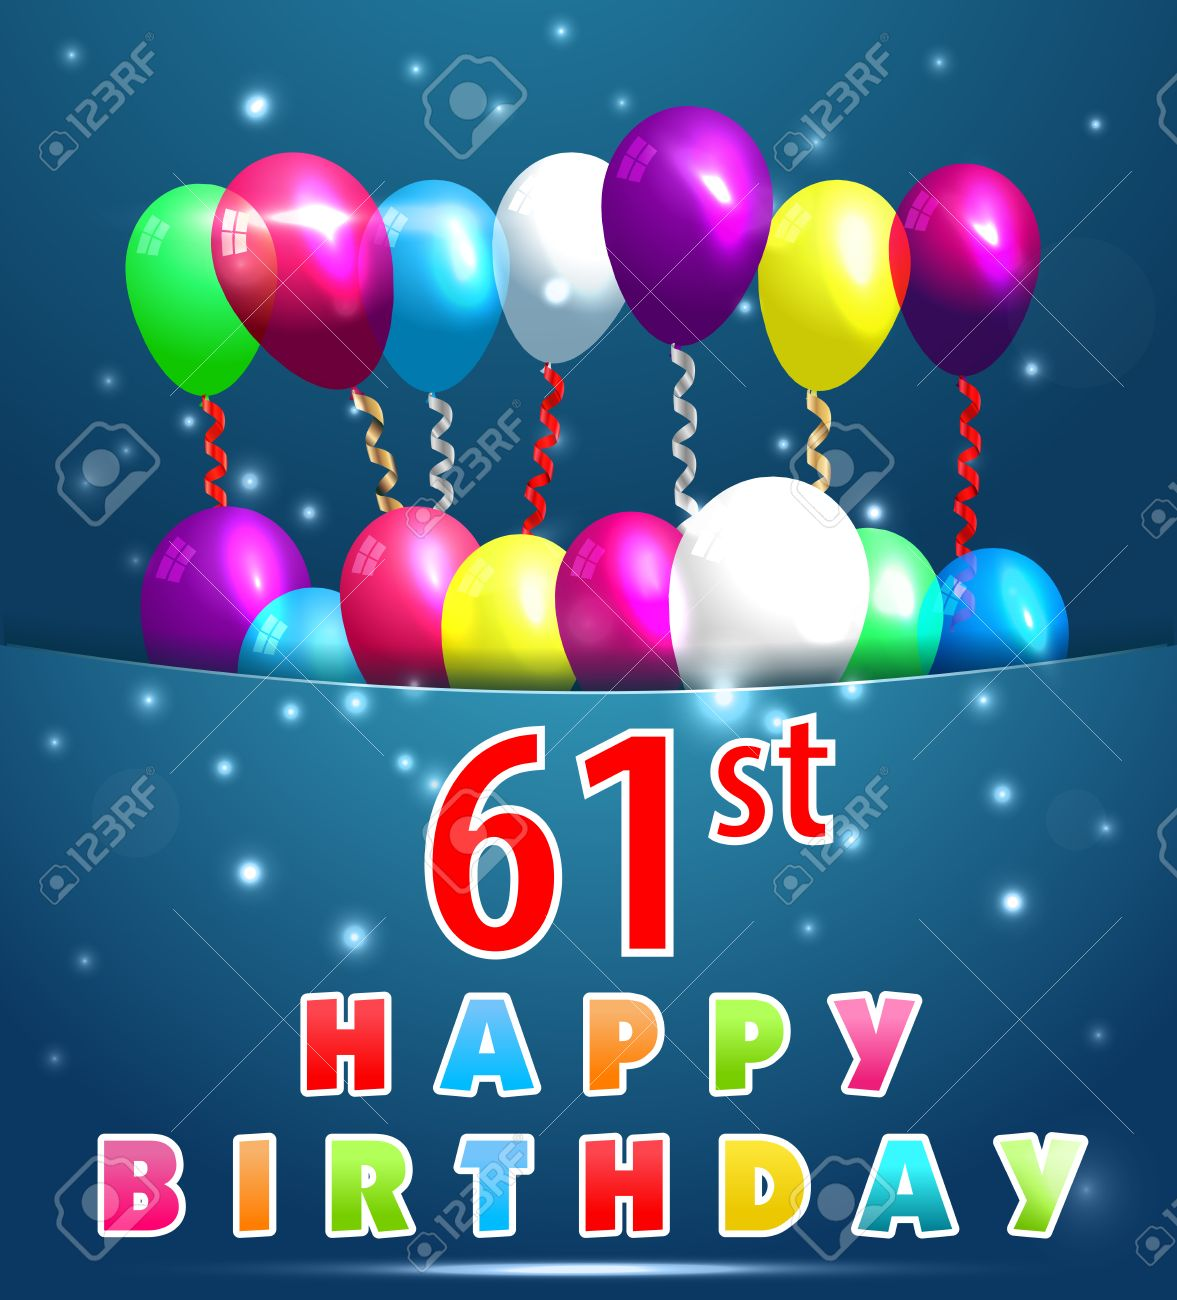 61 Year Happy Birthday Card With Balloons And Ribbons 61st Birthday